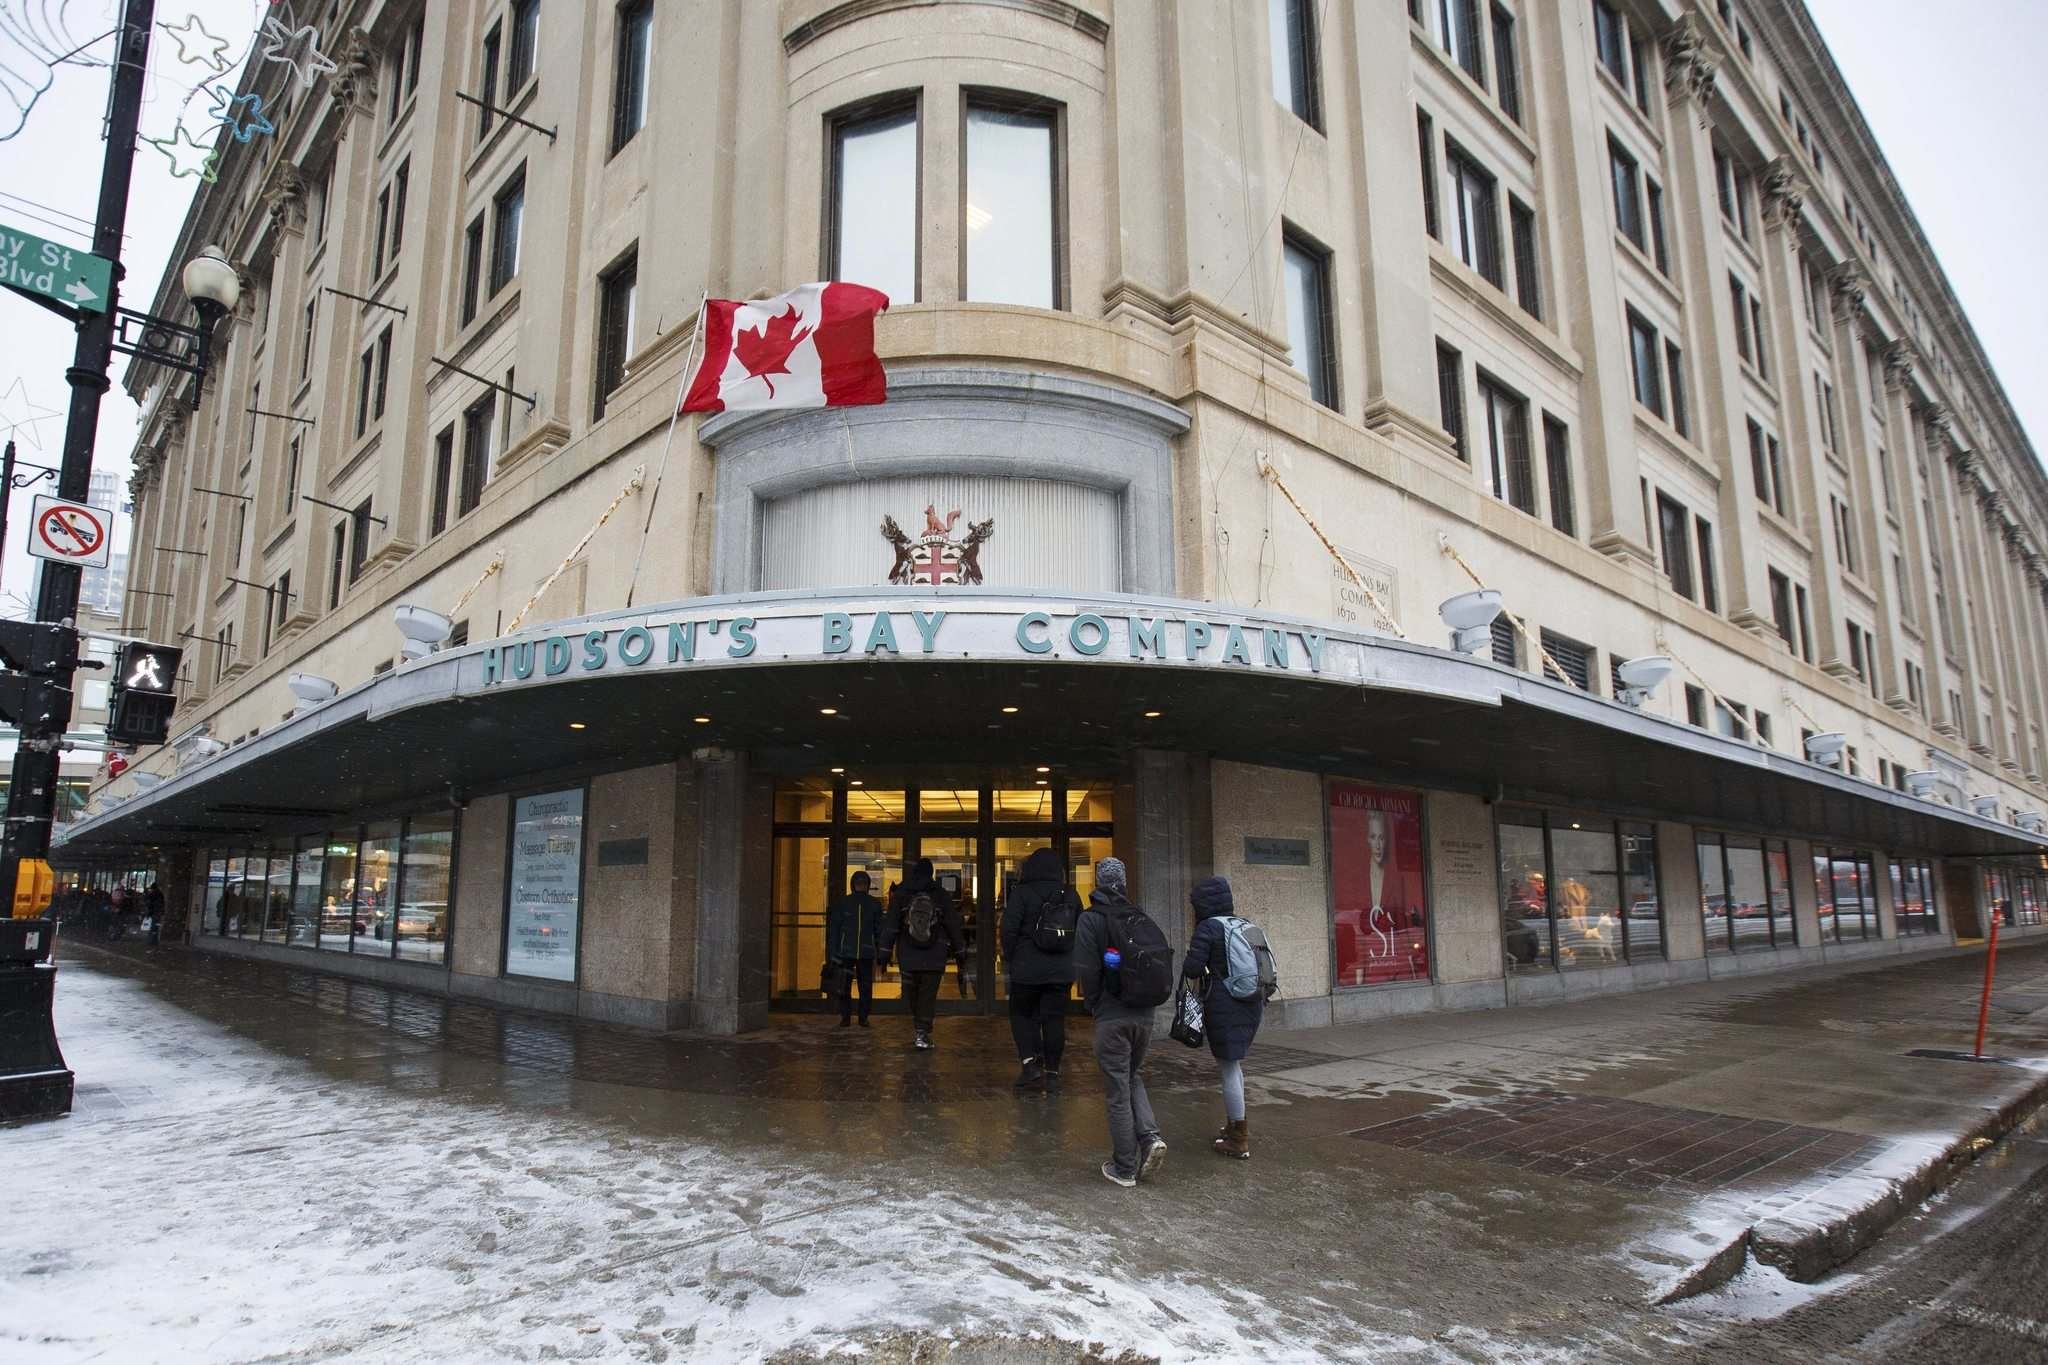 The Hudson's Bay Company building at Portage Avenue and Memorial Boulevard has been appraised at $0, likely because it carries a $302,298 tax liability. (Mike Deal / Winnipeg Free Press)